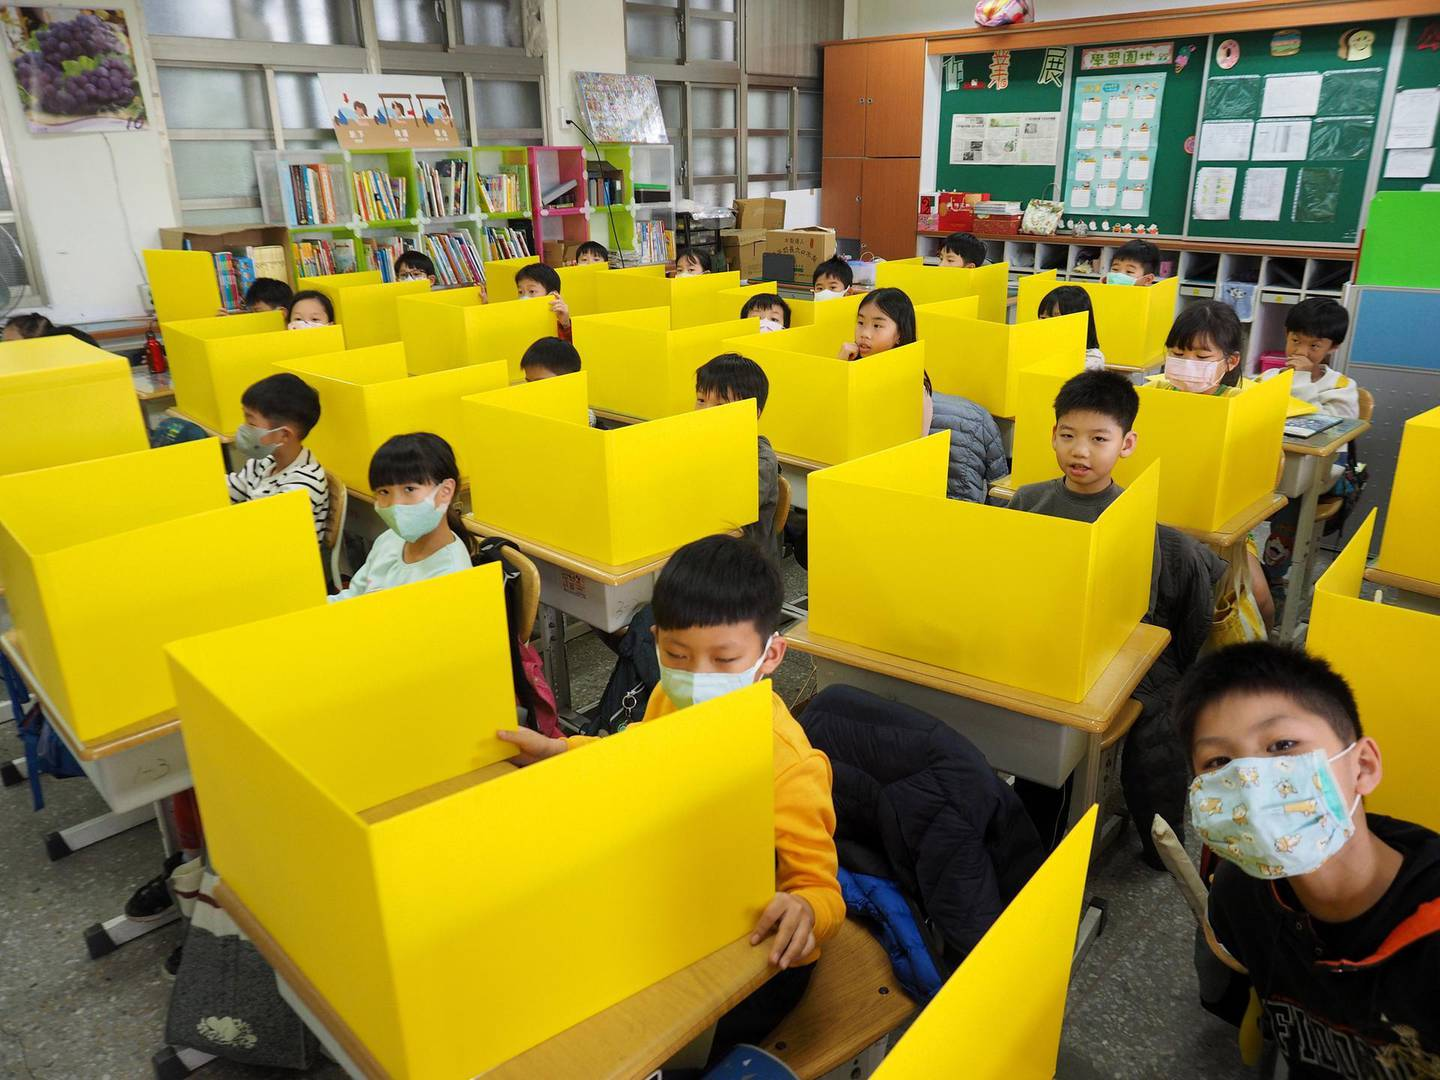 epa08267030 Pupils, with some of them wearing face masks, sit behind partition boards as they attend class at Dajia Elemental School in Taipei, Taiwan, 03 March 2020. The school prepared the boards, made with PP Corrugated Board, to prevent infection of Covid-19 coronavirus by saliva when pupils talk, cough, sneeze or eat lunch in the classroom.  EPA/DAVID CHANG